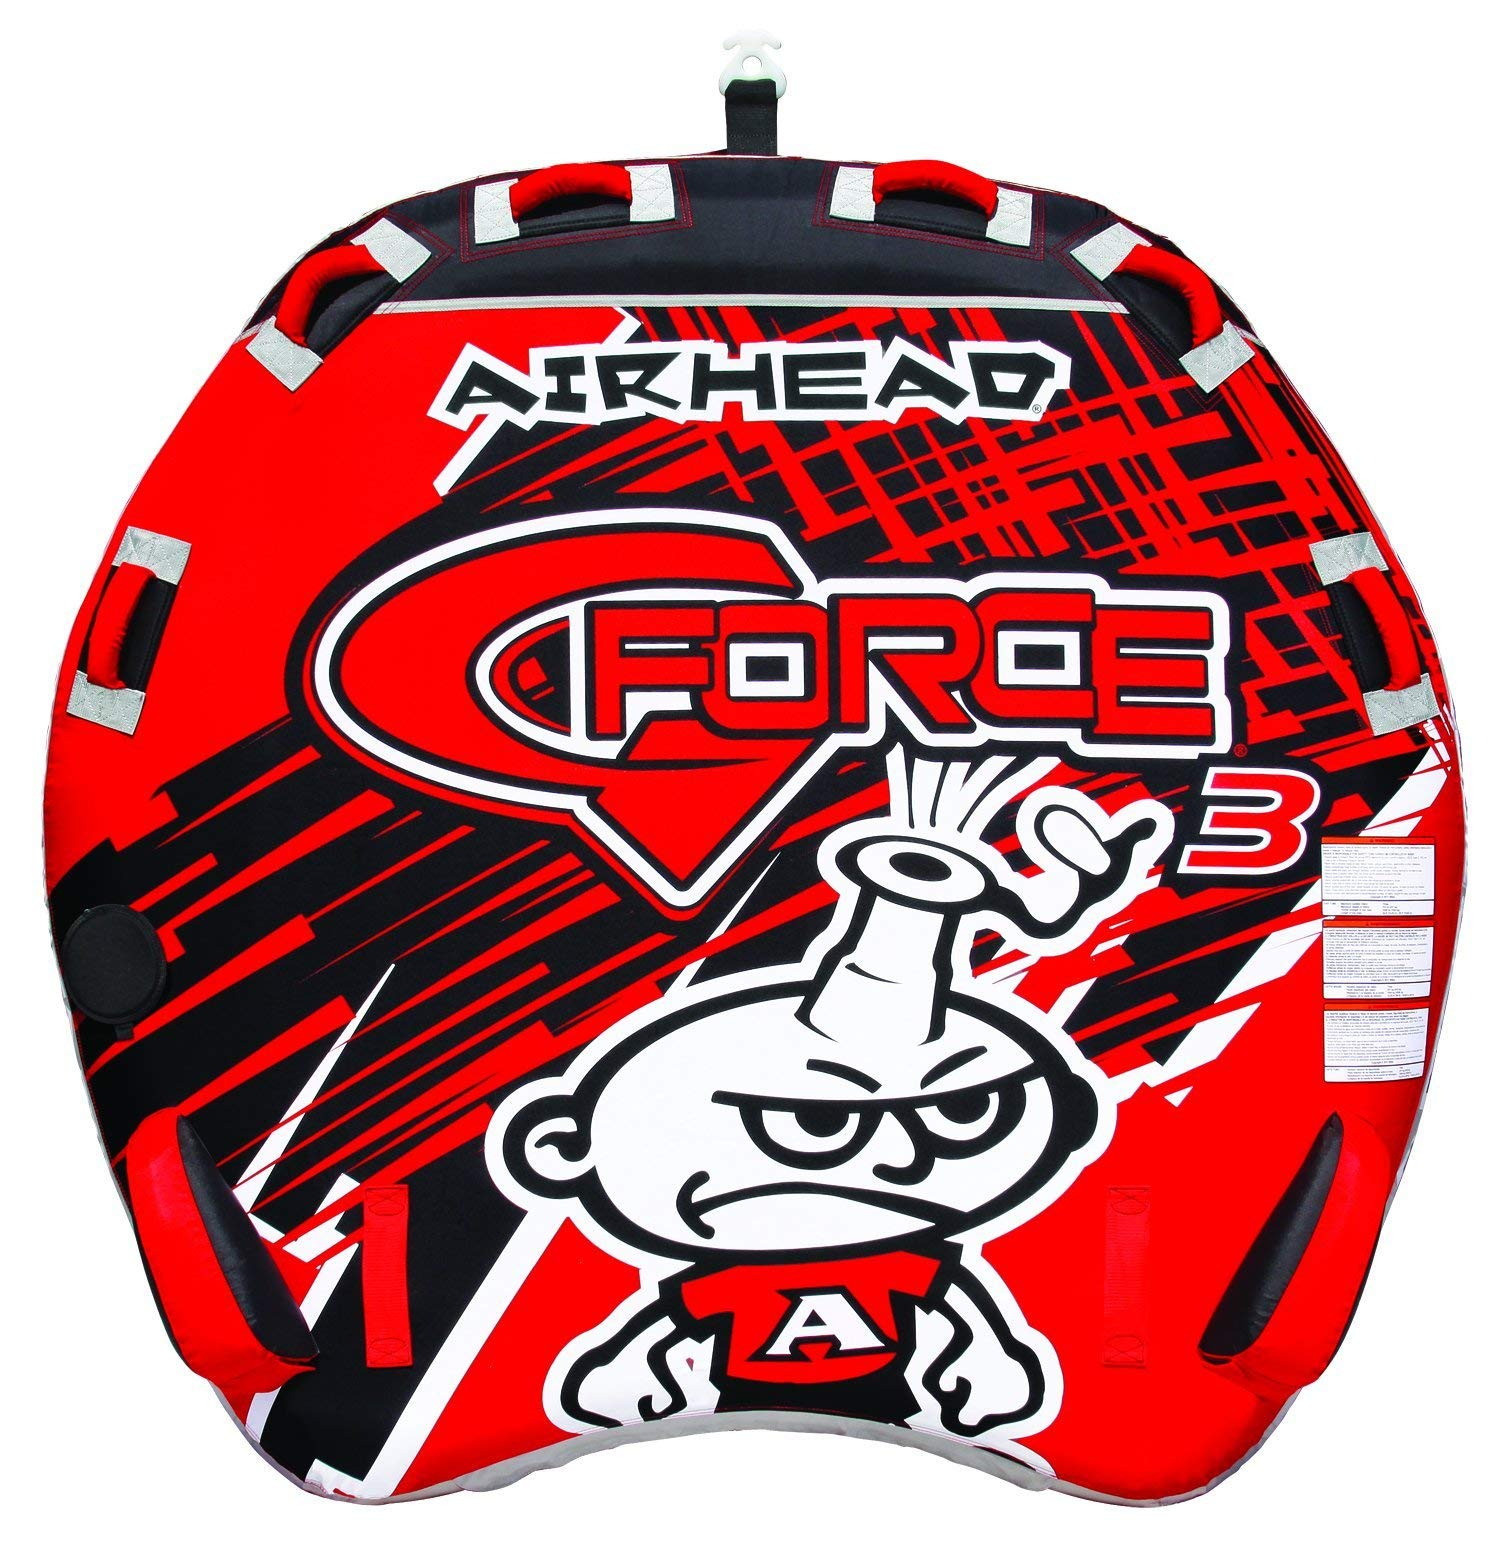 AIRHEAD AHGF-3 G-Force Inflatable Towable (Renewed) by Airhead